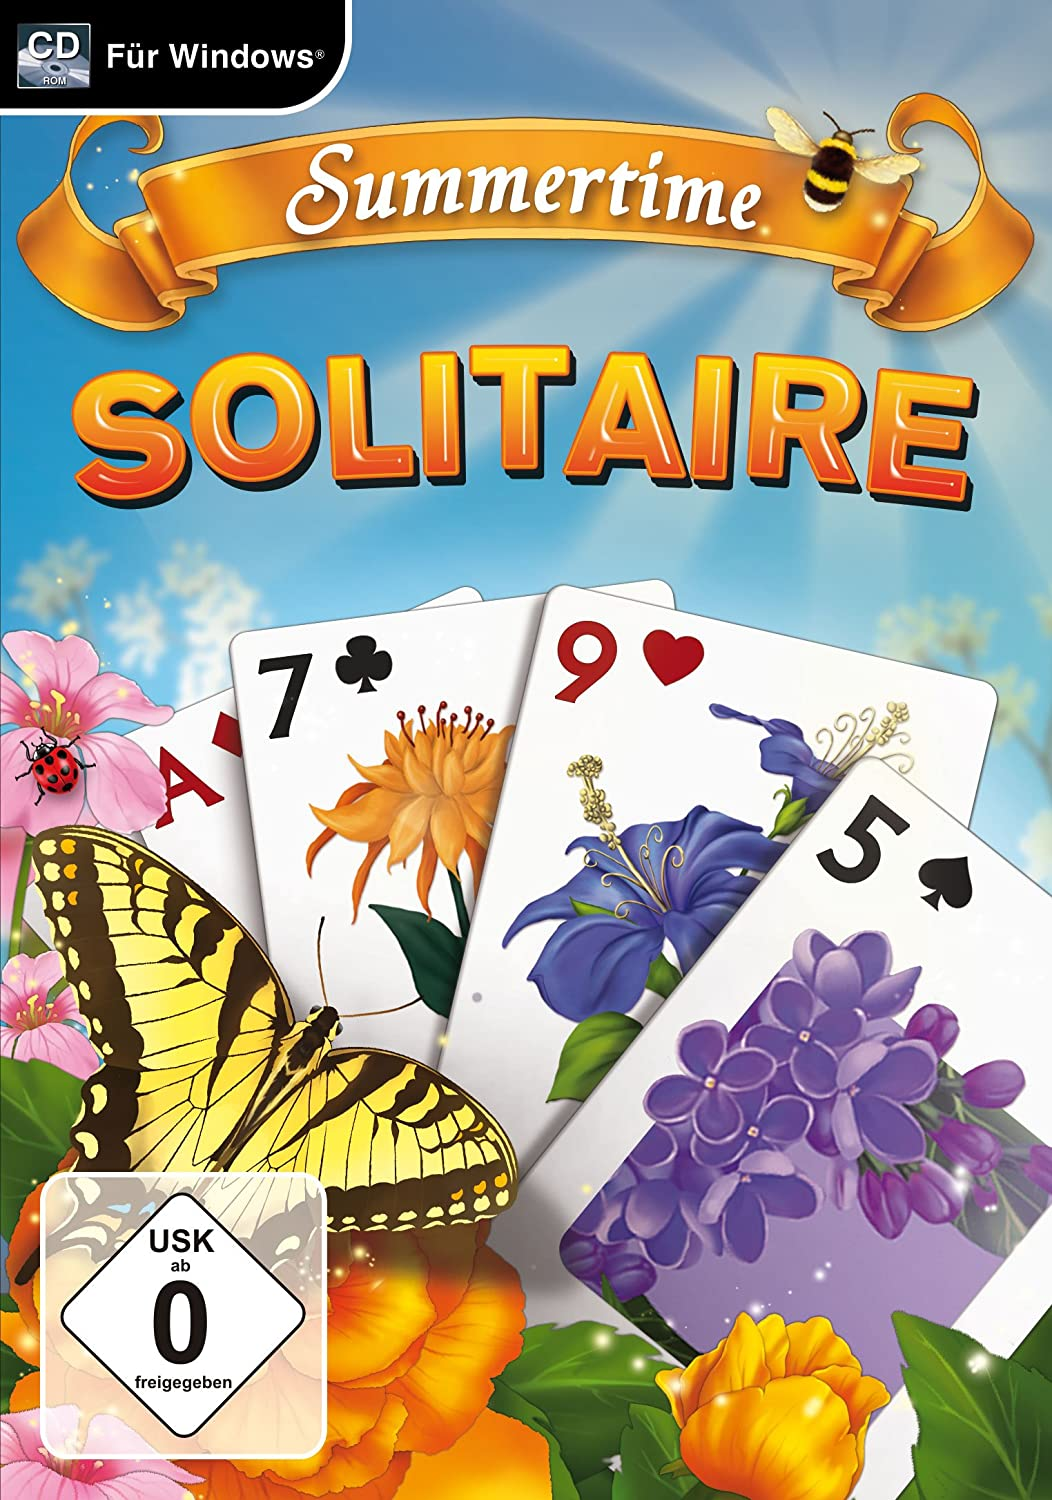 Summertime Solitaire [PC]